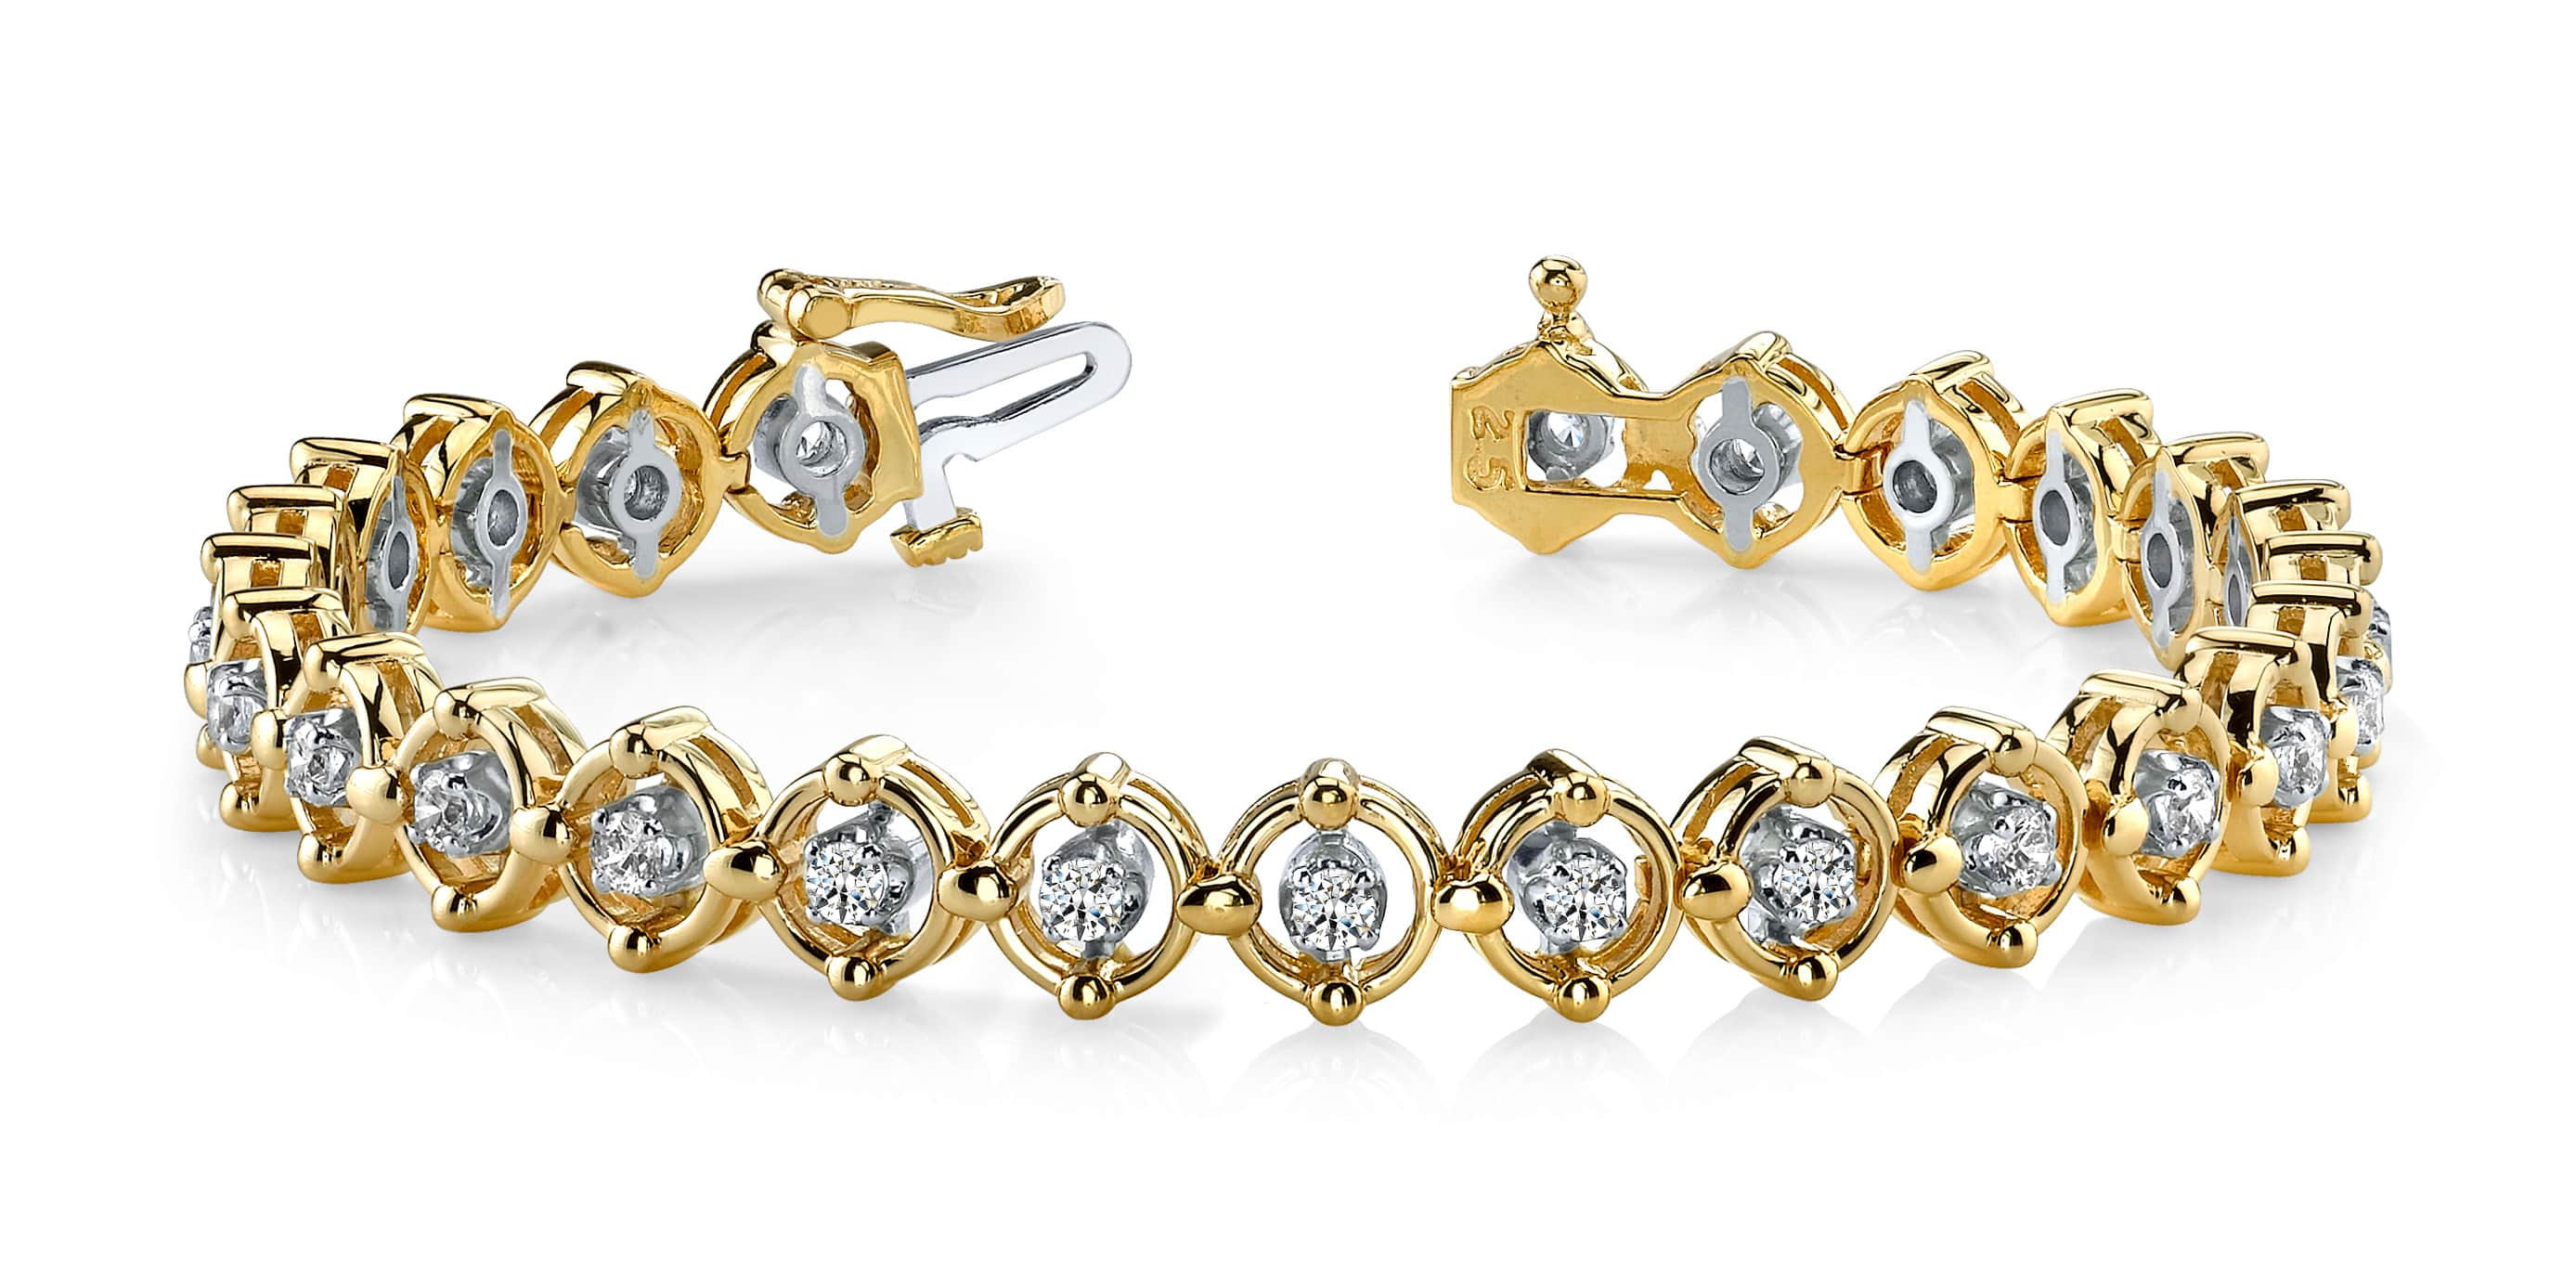 Guide To The Diamonds Bracelet 1.16 Carat Total Weight